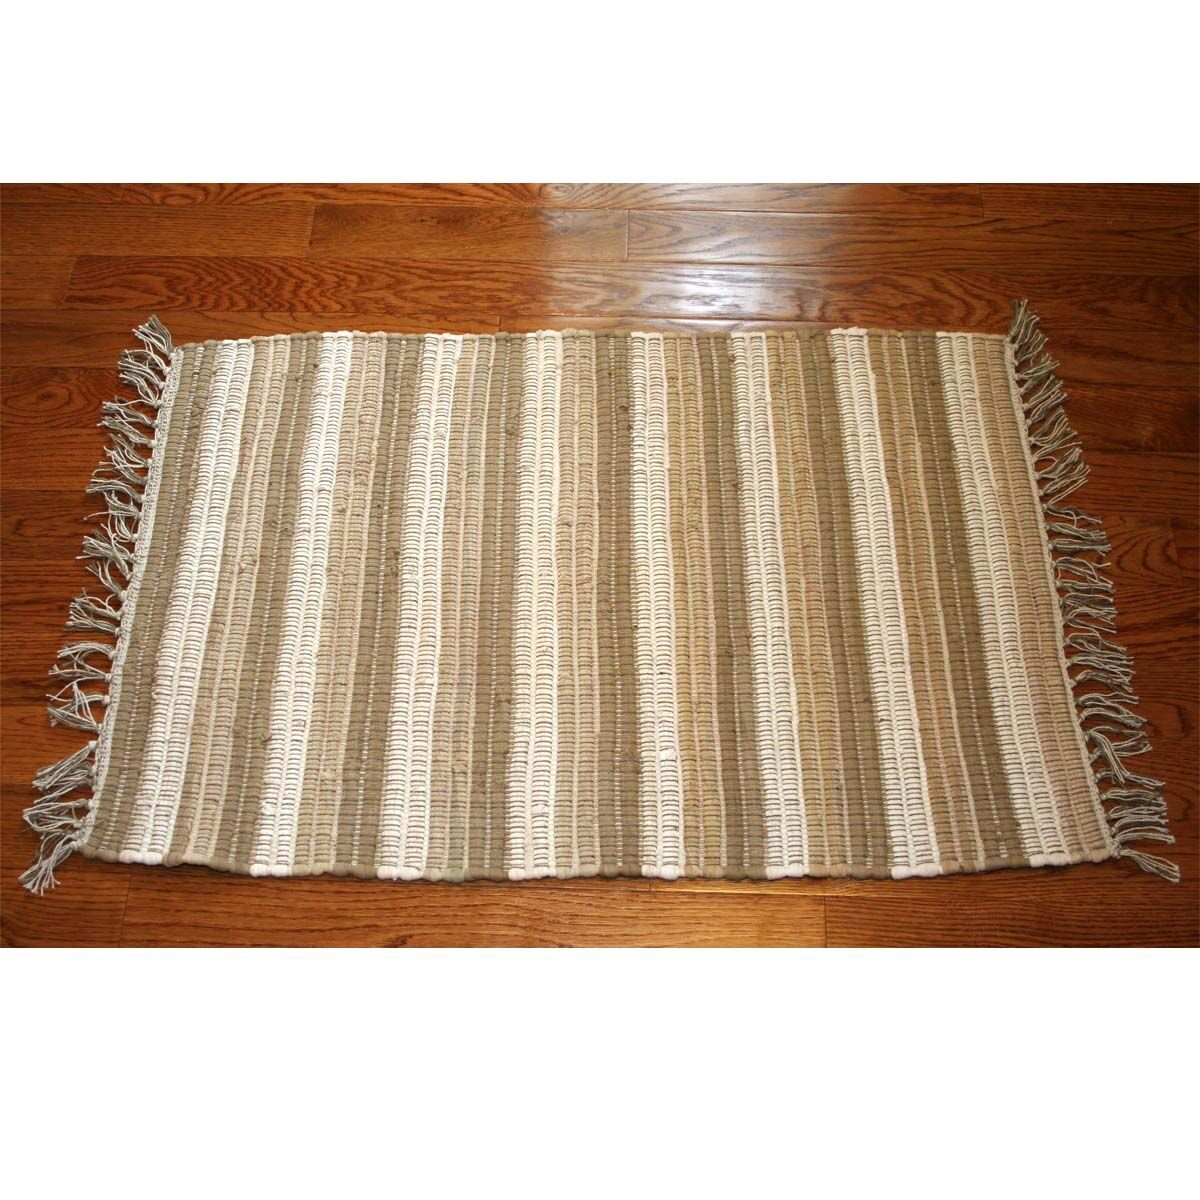 One-of-a-Kind Linmore Nubby Stripe Hand-Woven Cream Area Rug Rug Size: Rectangle 3' x 5'